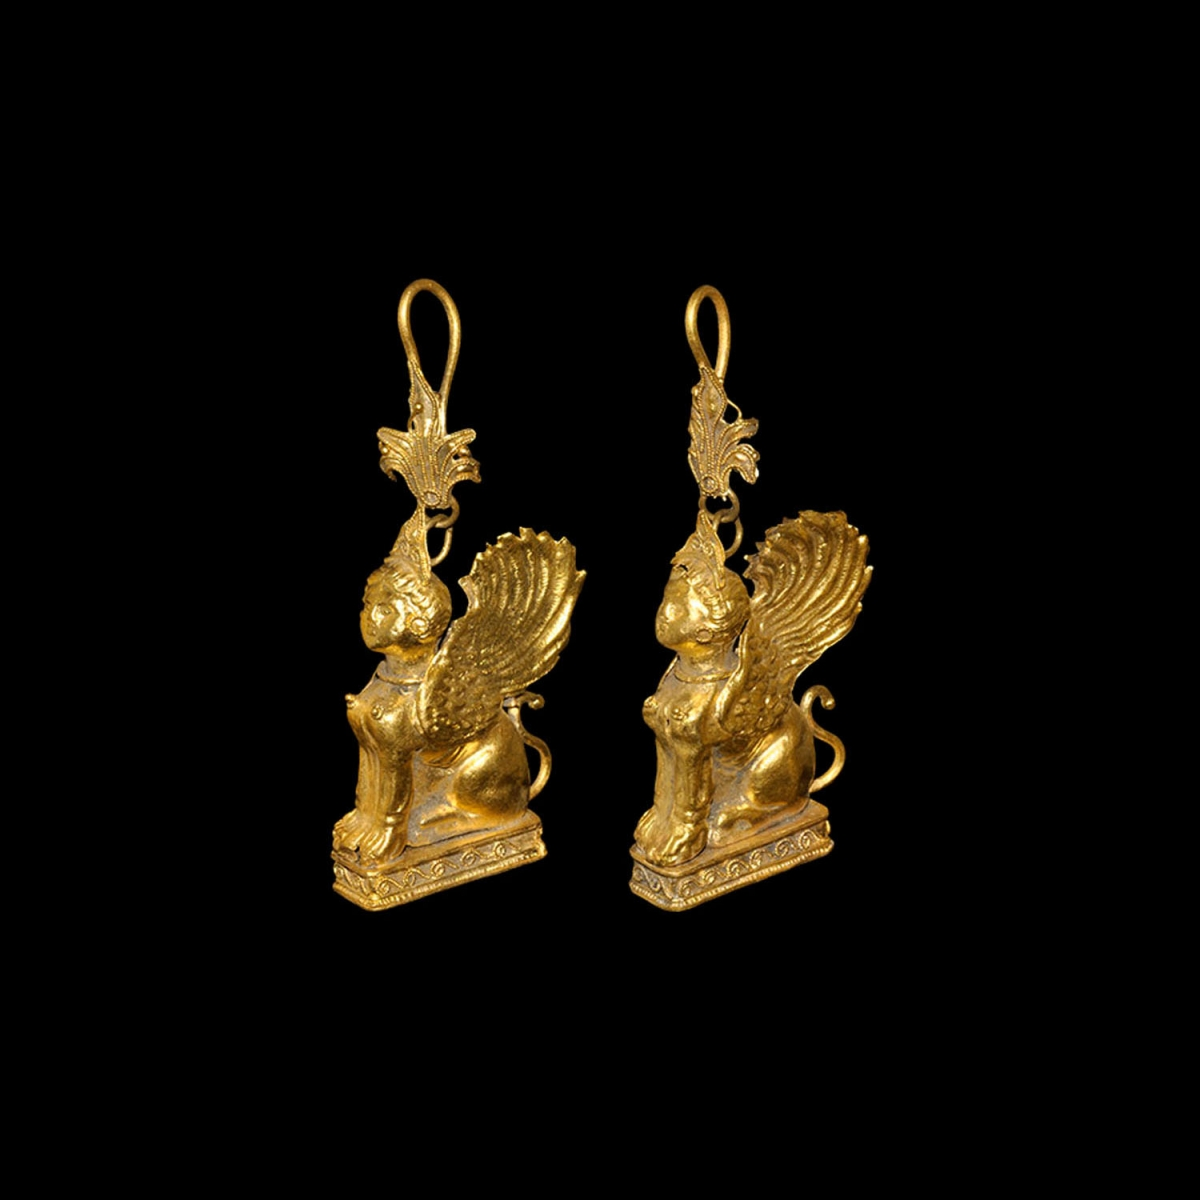 Photo of rare-ancient-greek-earrings-with-sphinx-gold-galerie-golconda-expert-ancient-jewels